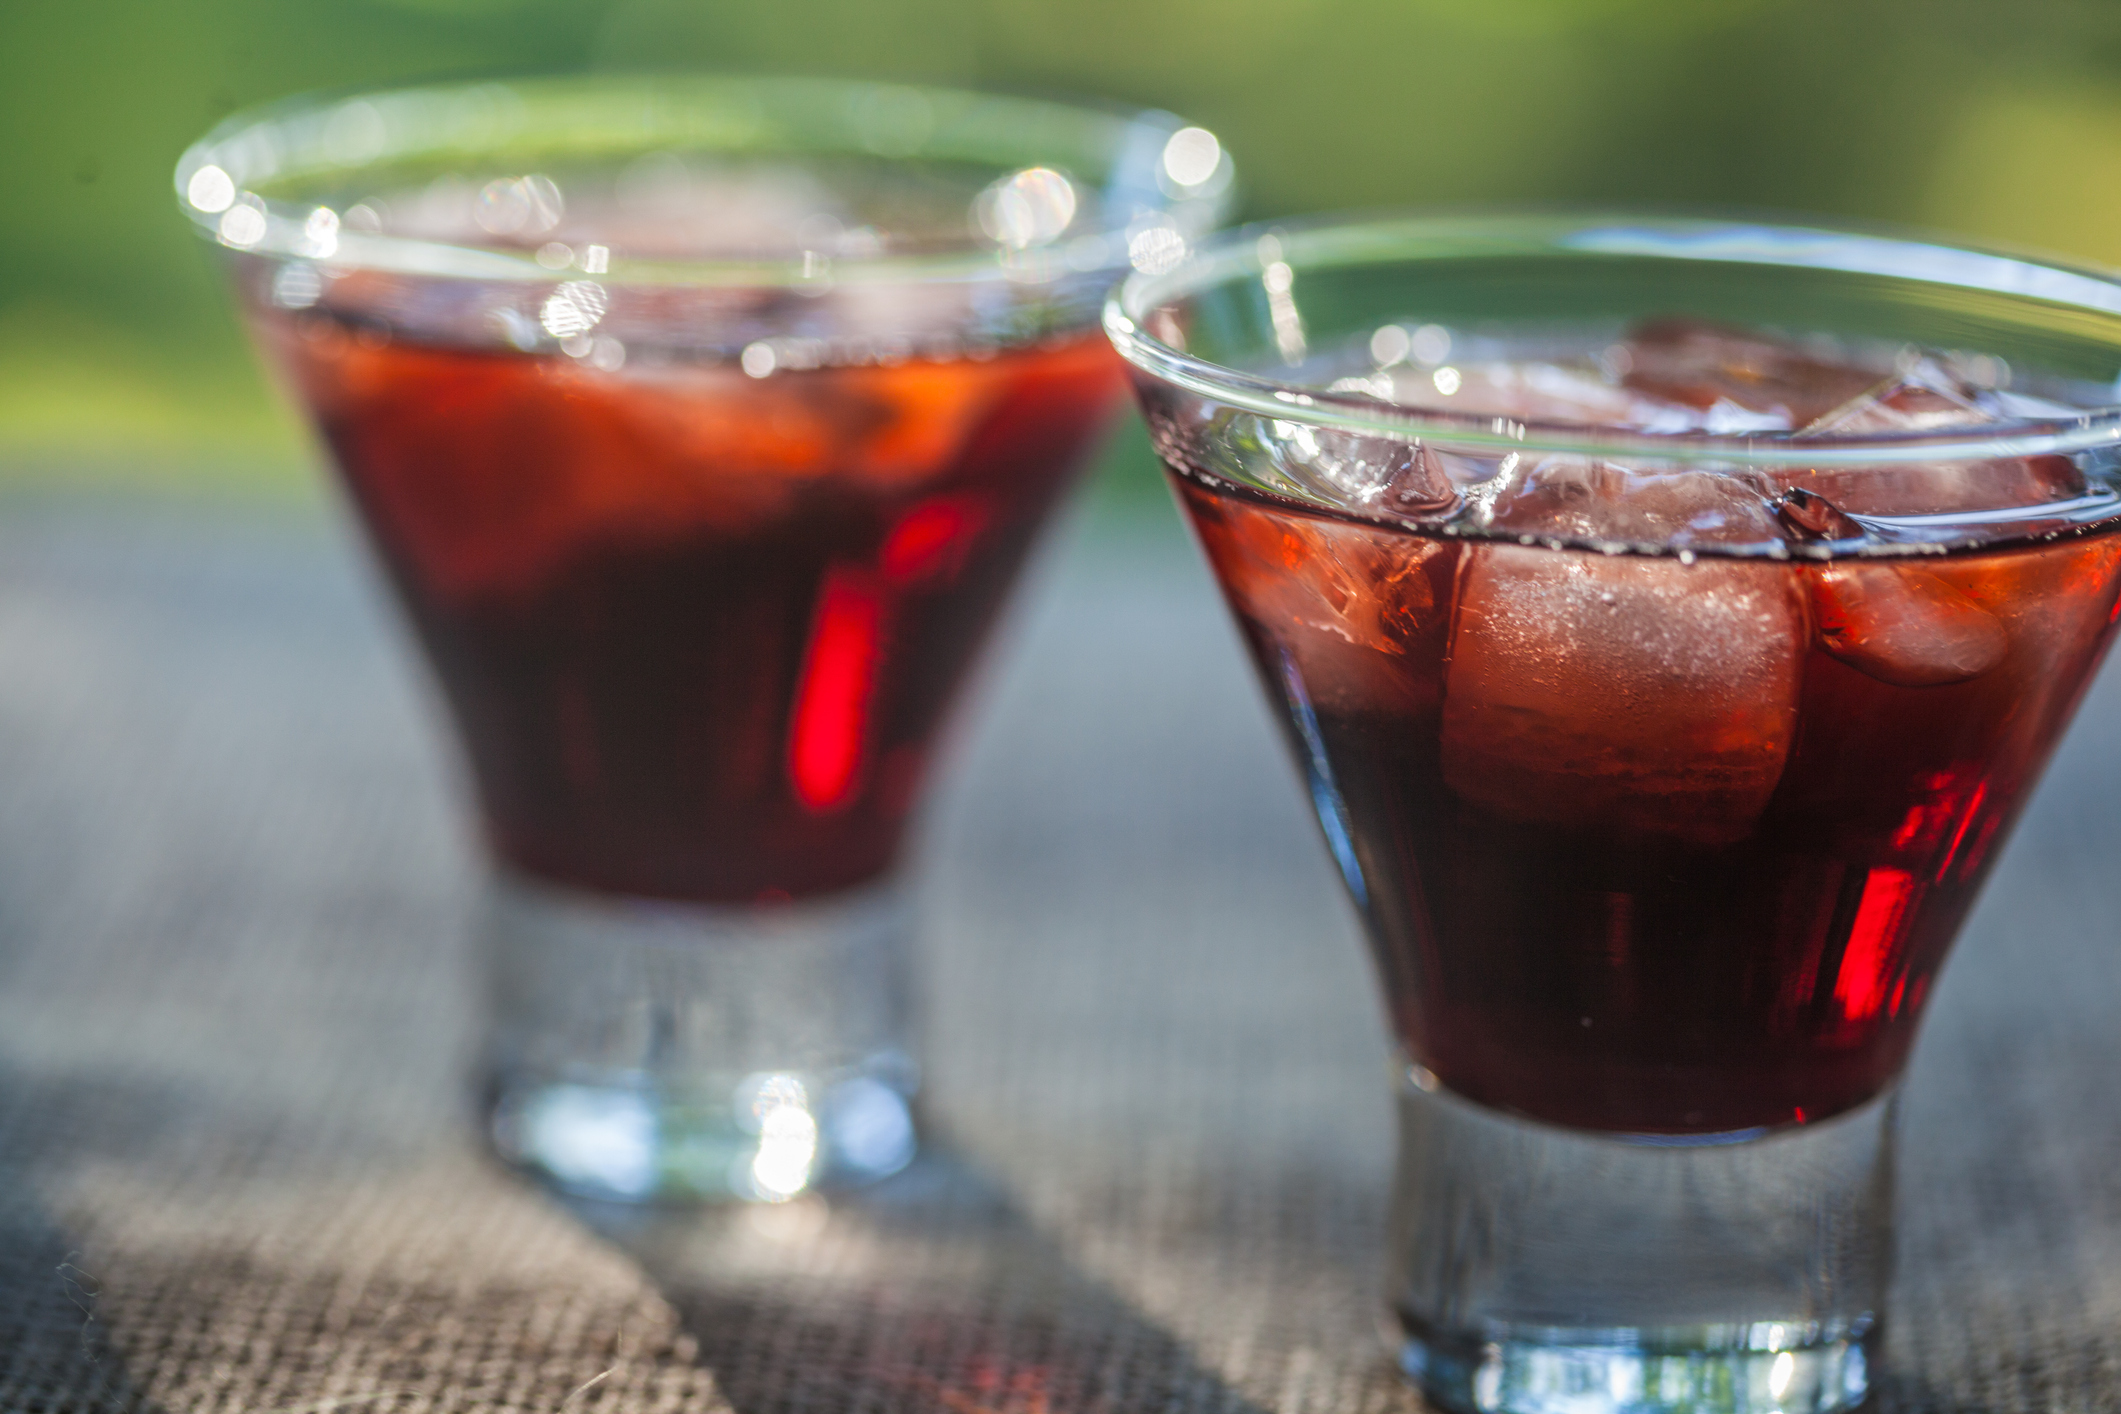 Two glasses of cold Tinto de verano also known as Summer red wine.